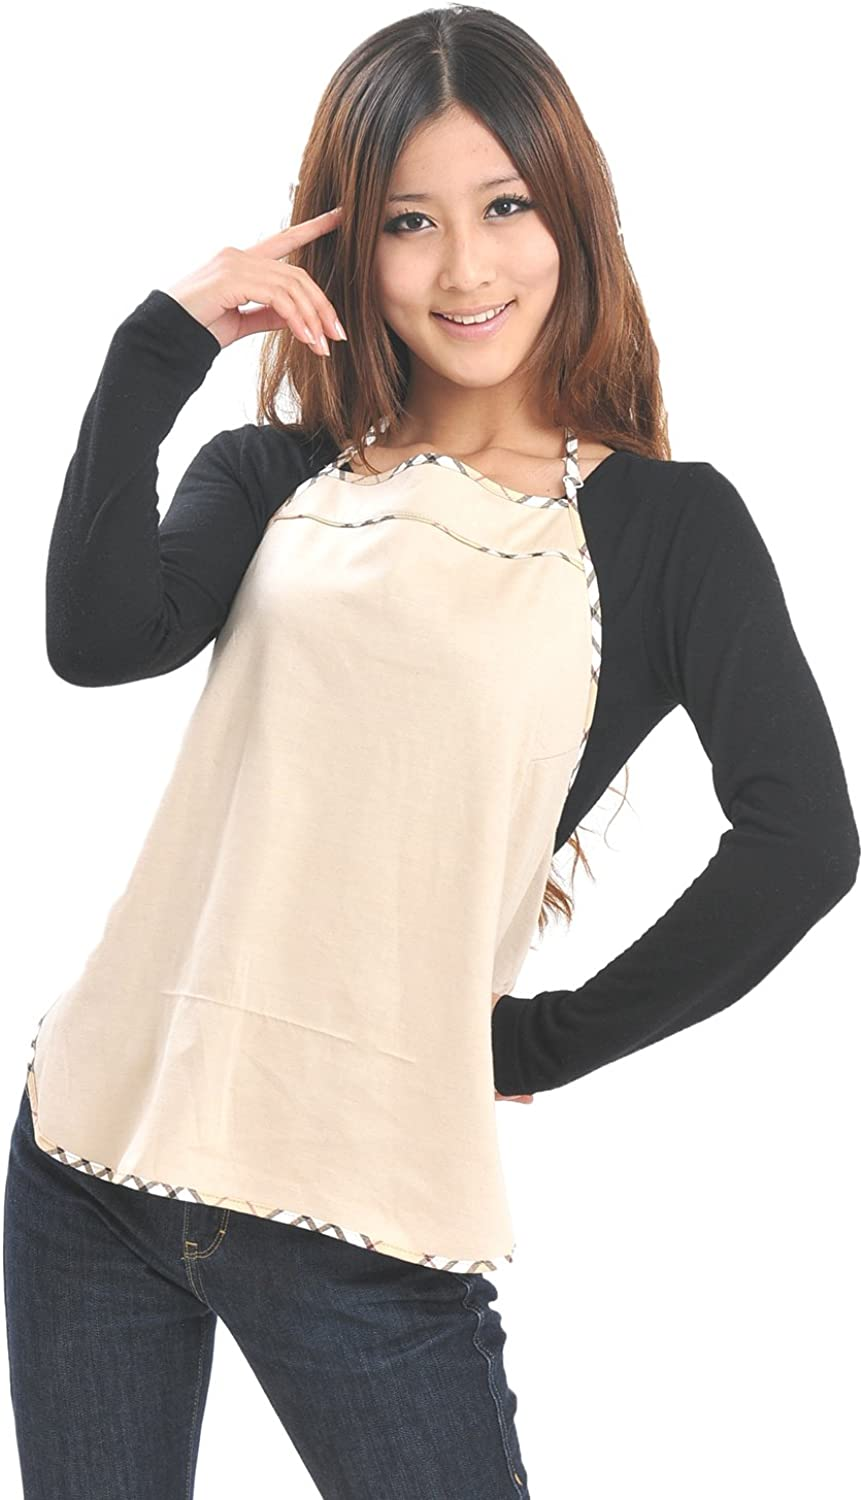 Oursure Argent Anti-Radiation Protection Maternity Top M 8900603